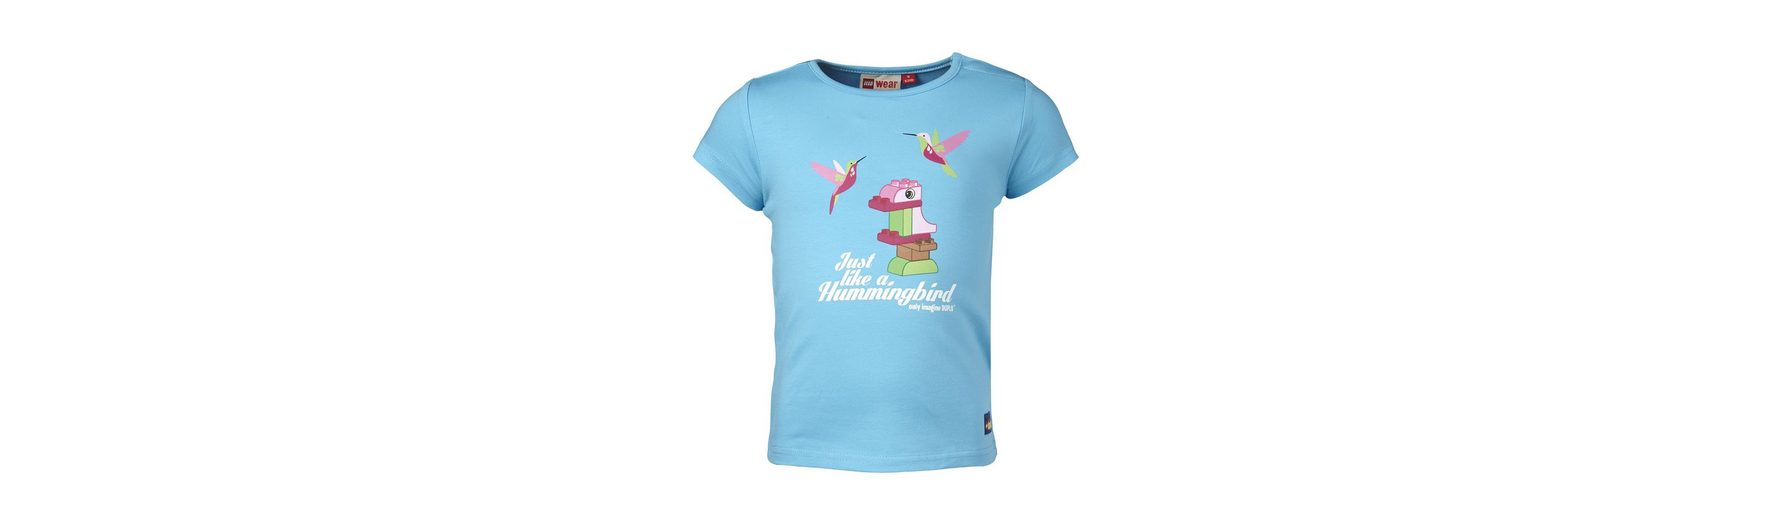 "LEGO Wear Duplo T-Shirt ""Just lika a Hummingbird"" Shirt Tina kurzarm"